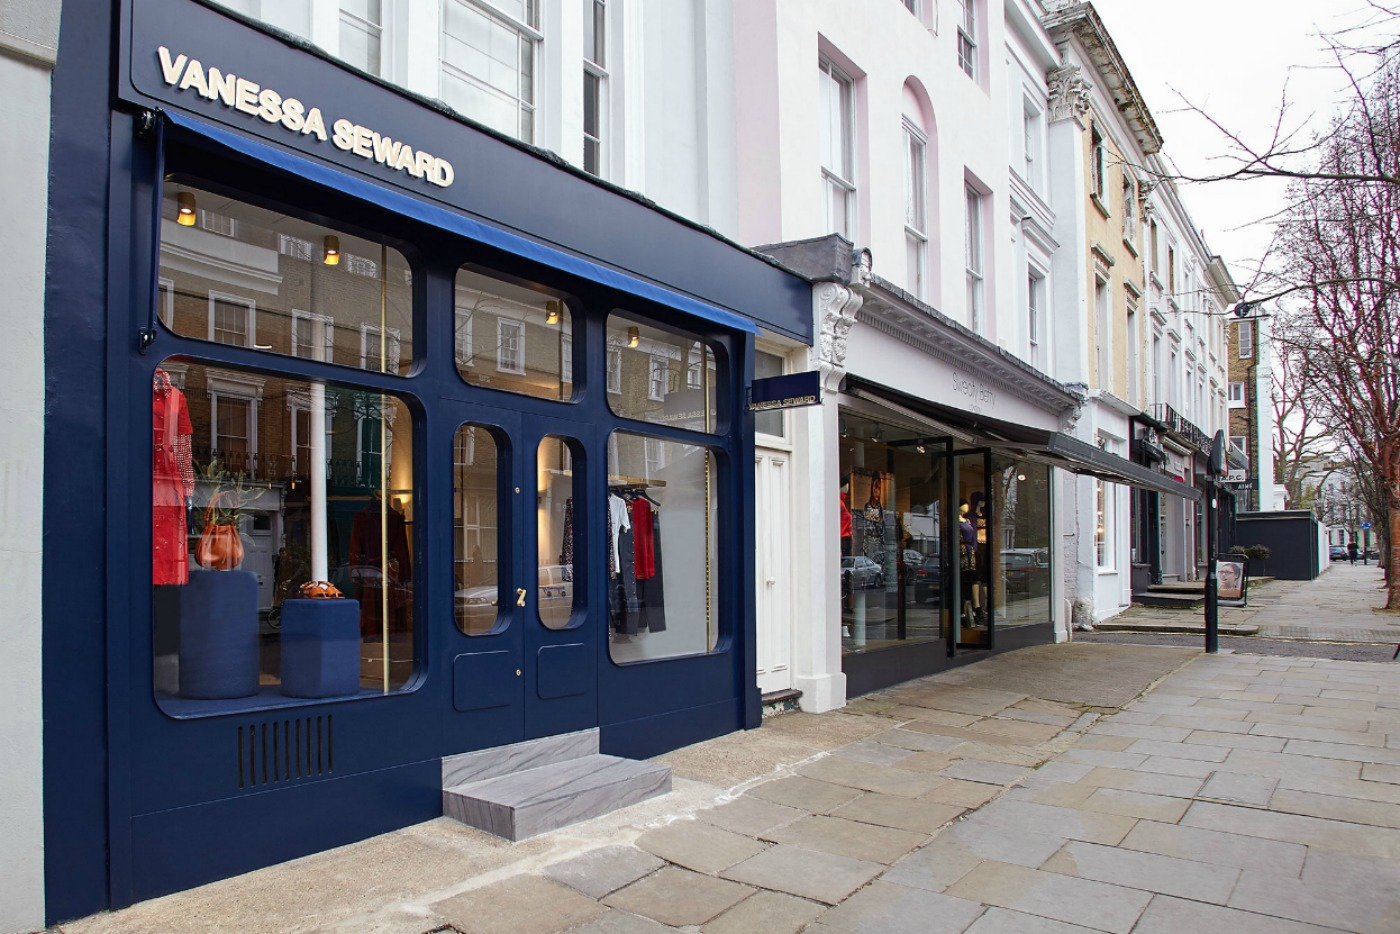 The Vanessa Seward shop on Ledbury Road, Notting Hill